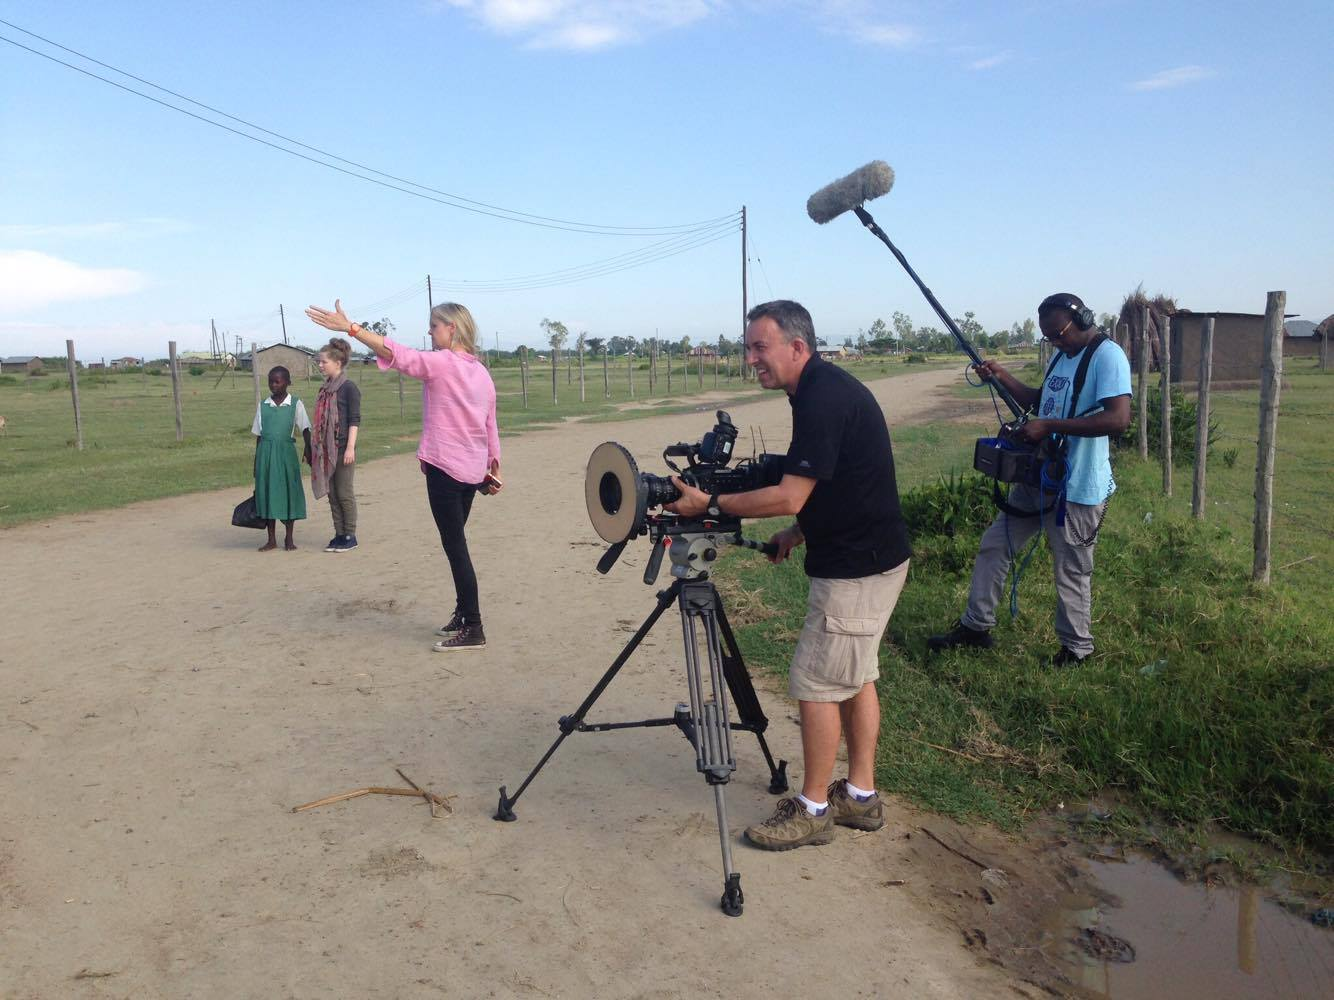 On location in Kenya